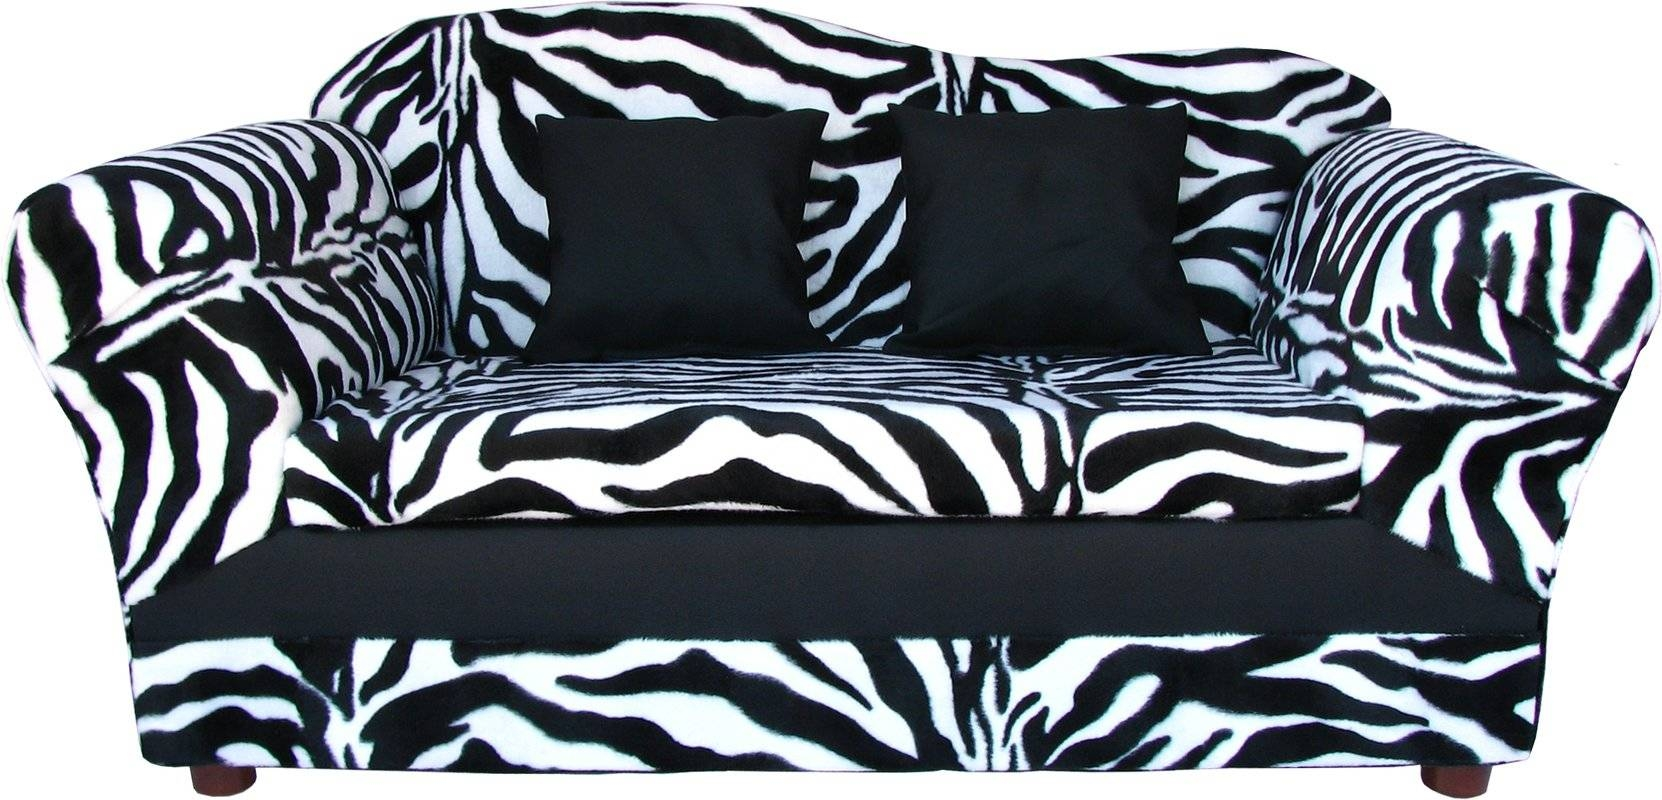 Featured Photo of Kids Sofa Chair And Ottoman Set Zebra